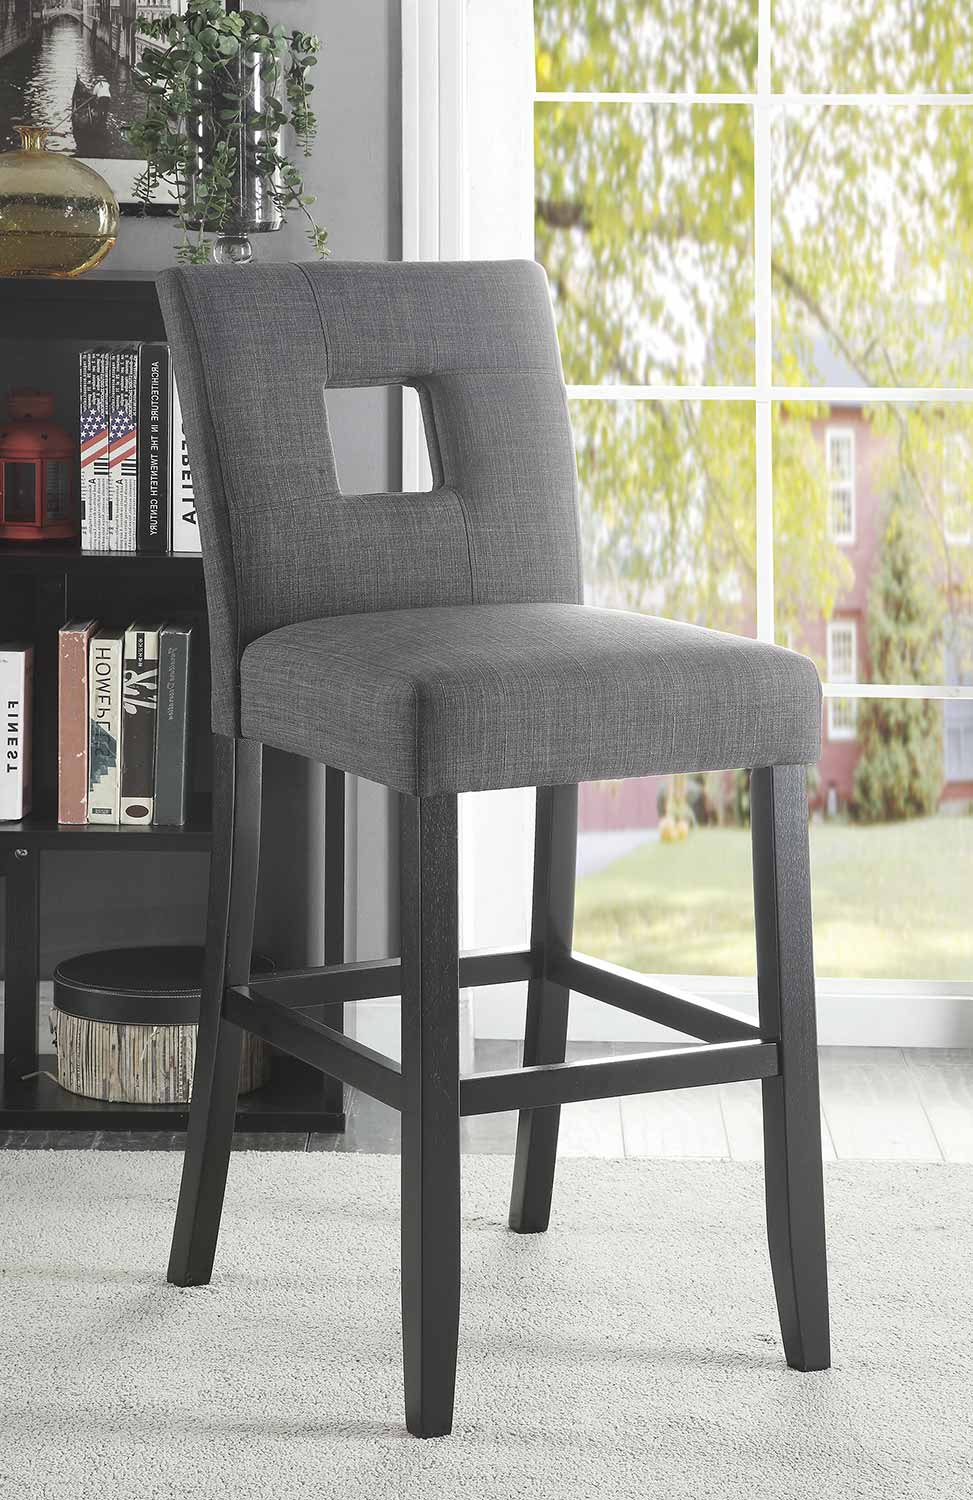 Coaster Andenne Counter Height Chair - Grey/Black